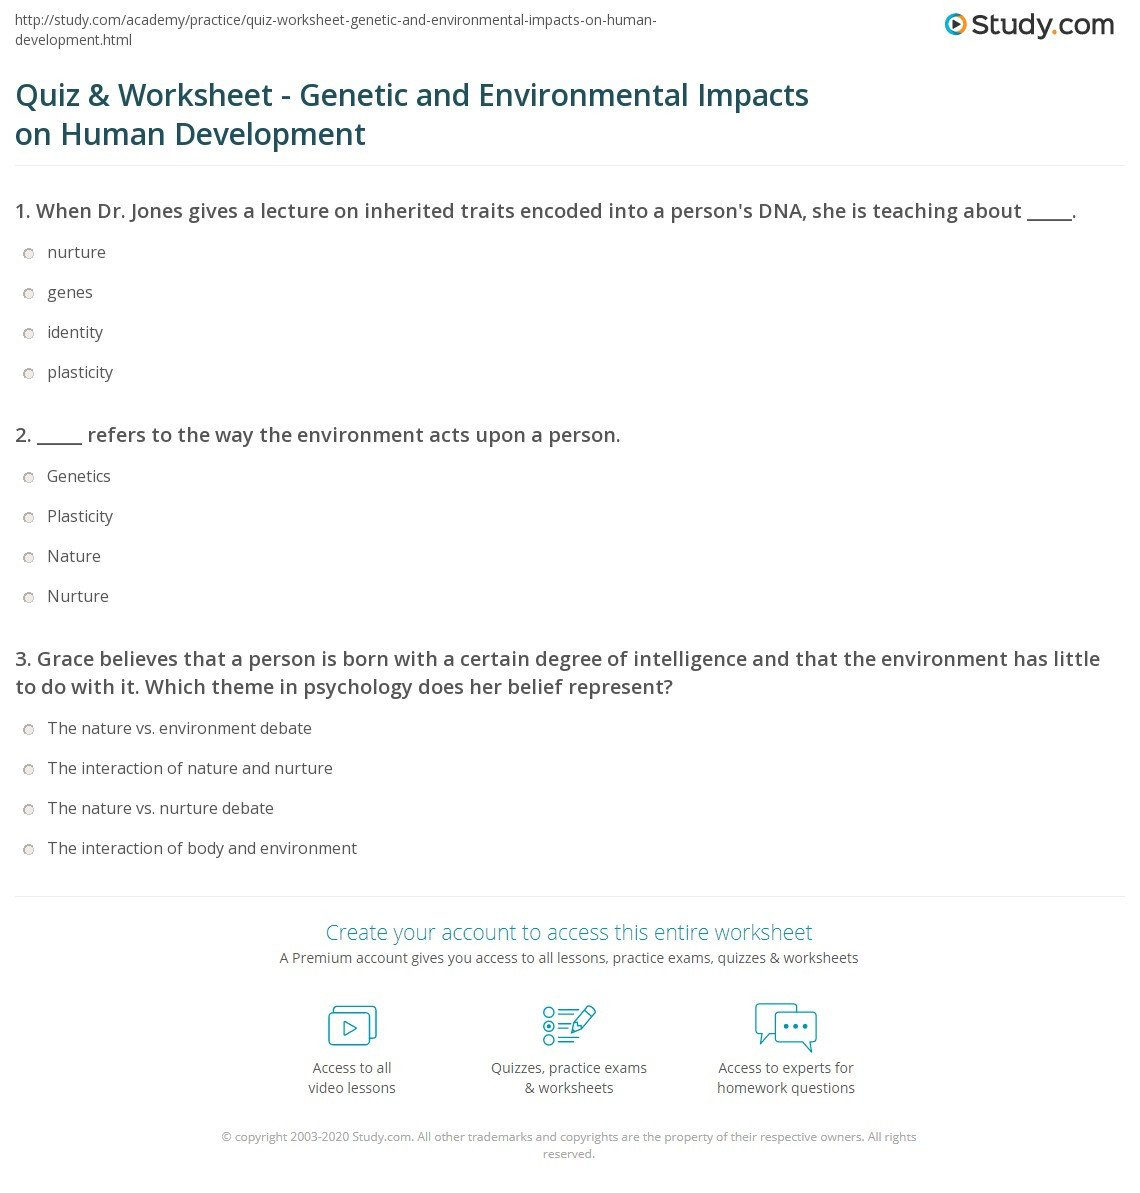 Inherited Traits Worksheet Quiz & Worksheet Genetic and Environmental Impacts On